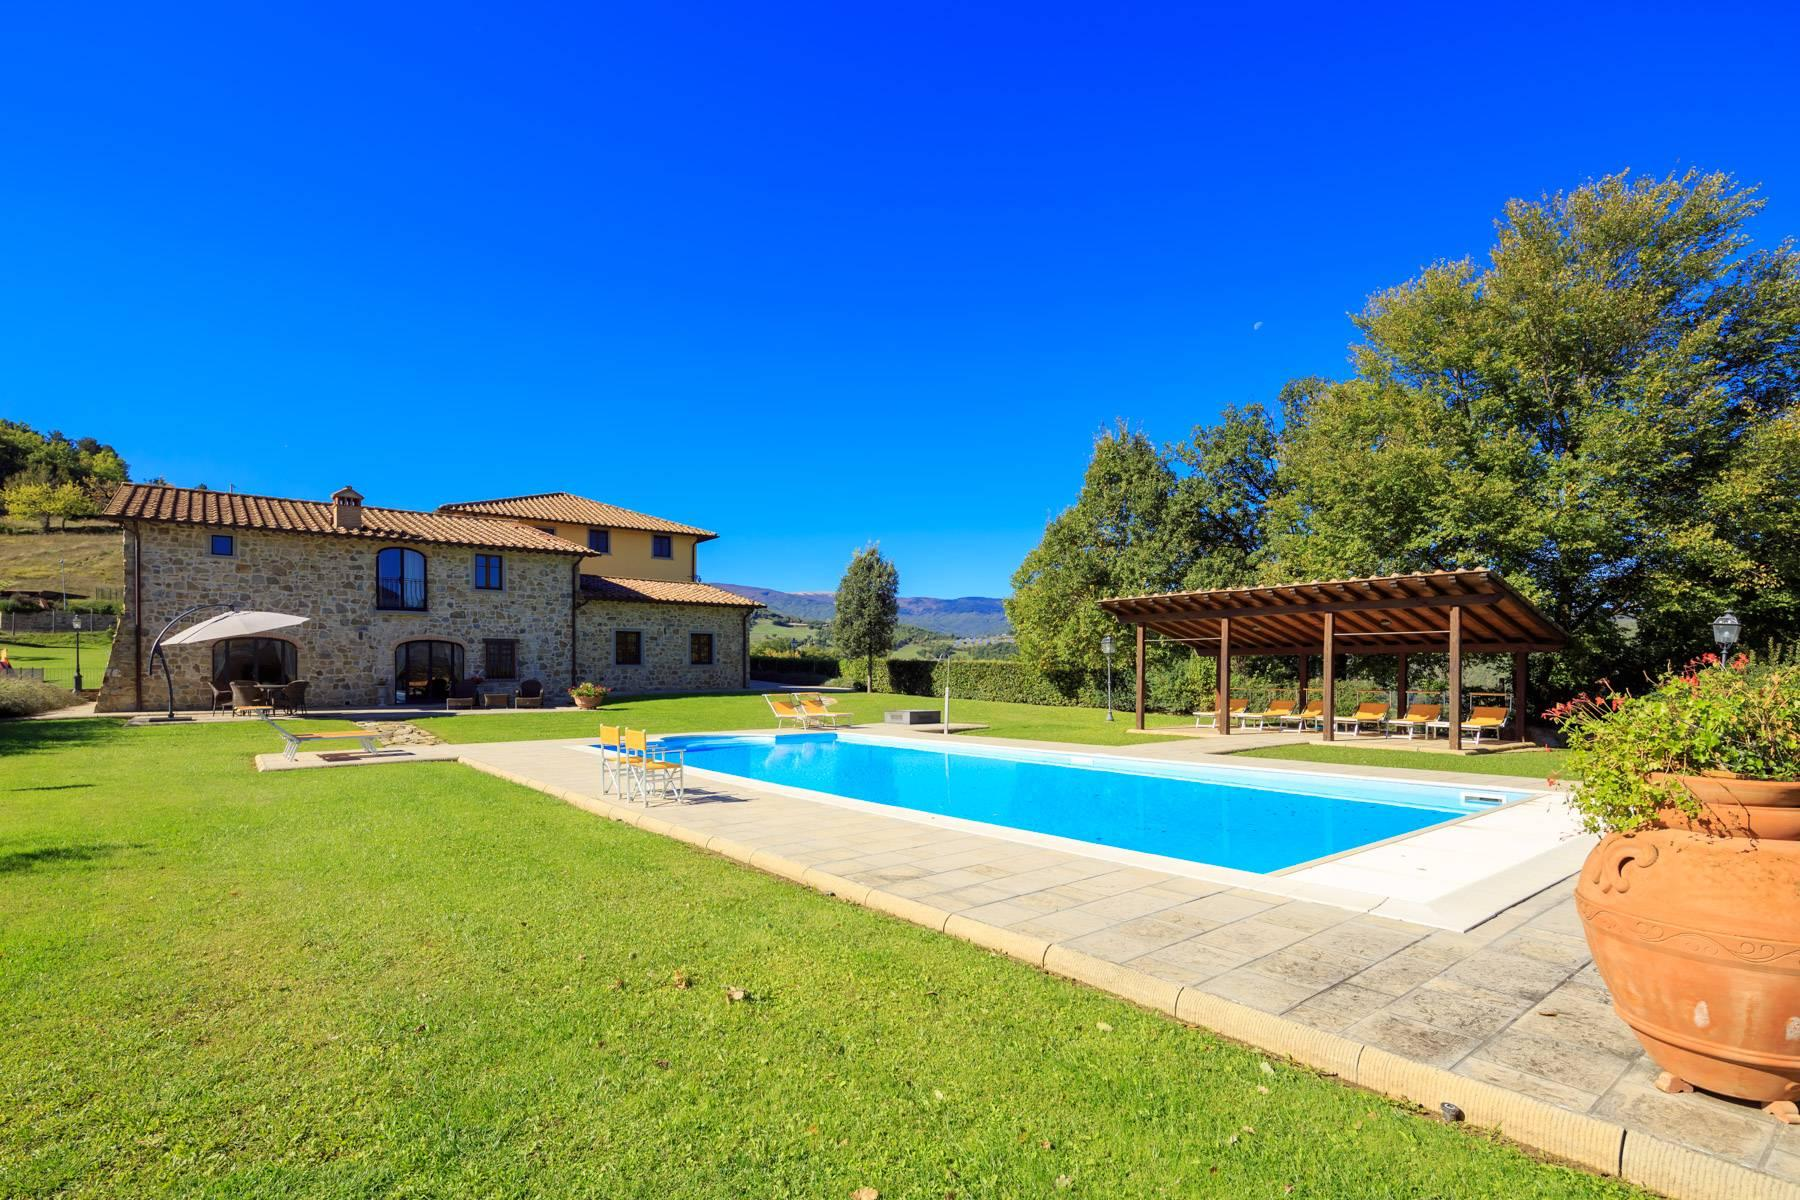 Marvelous estate with views over the Casentino valley - 4